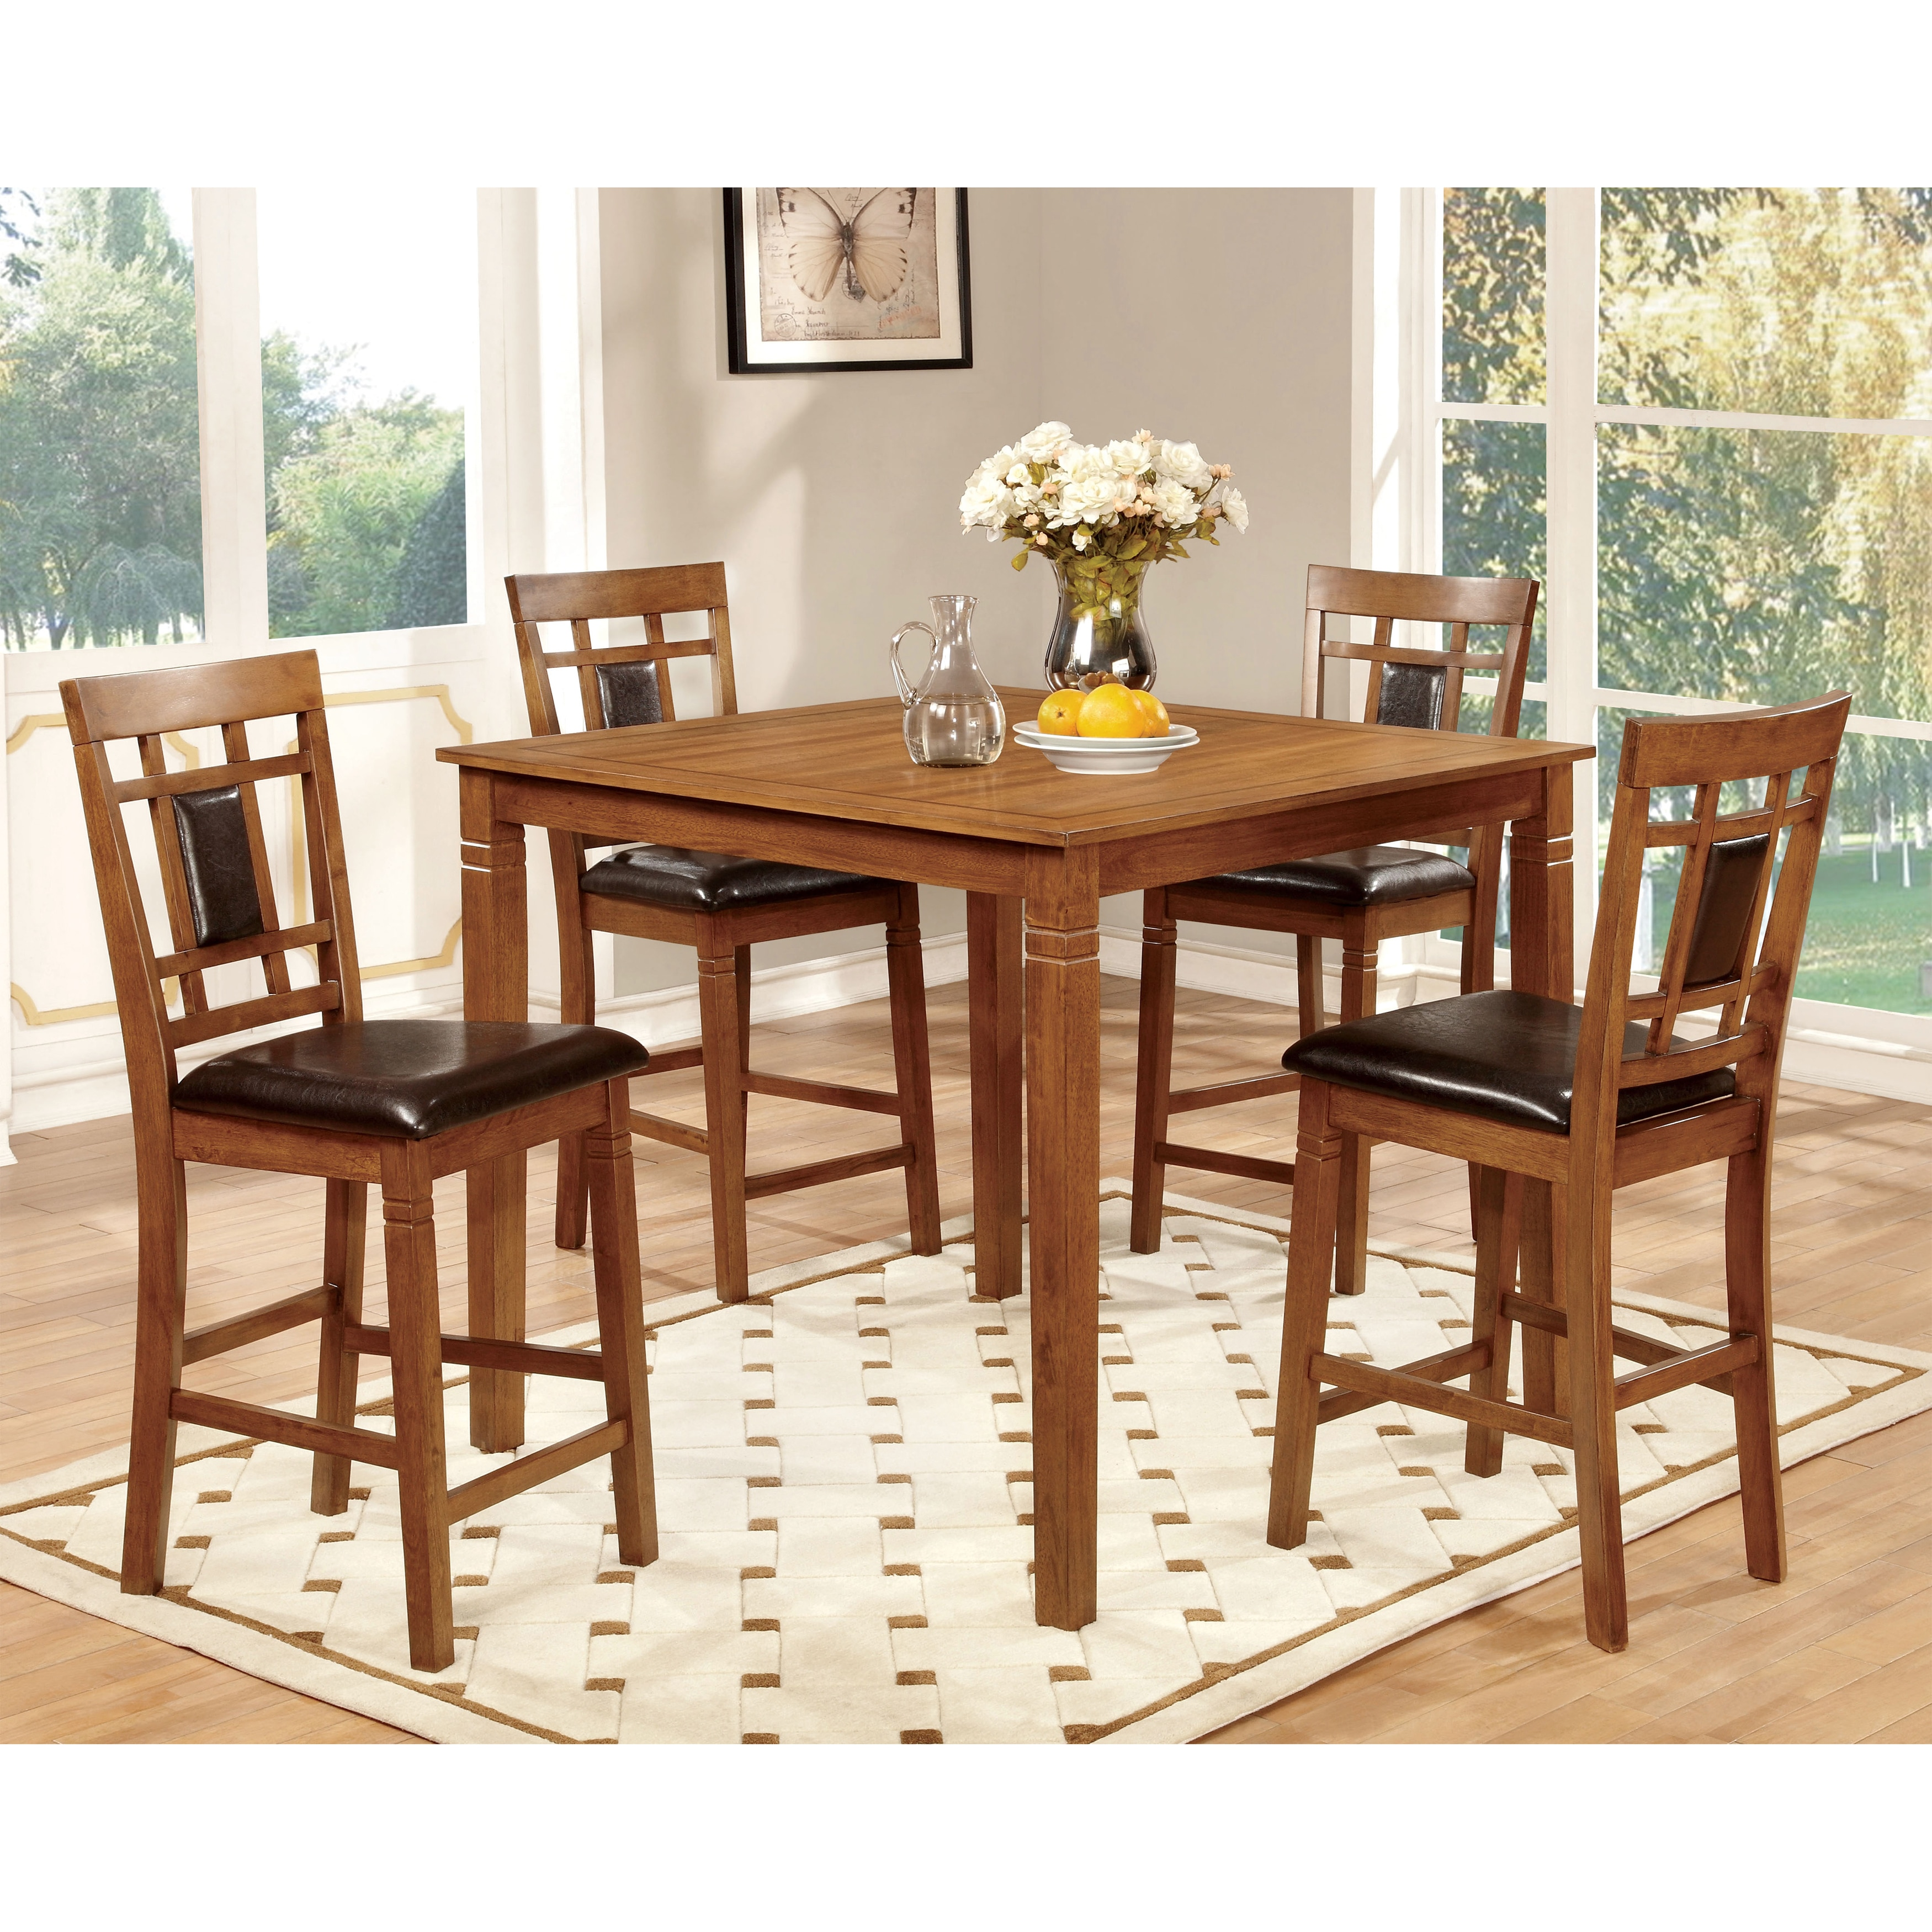 Features Dining Set Furniture Contains Faux Leather Set Includes One 1